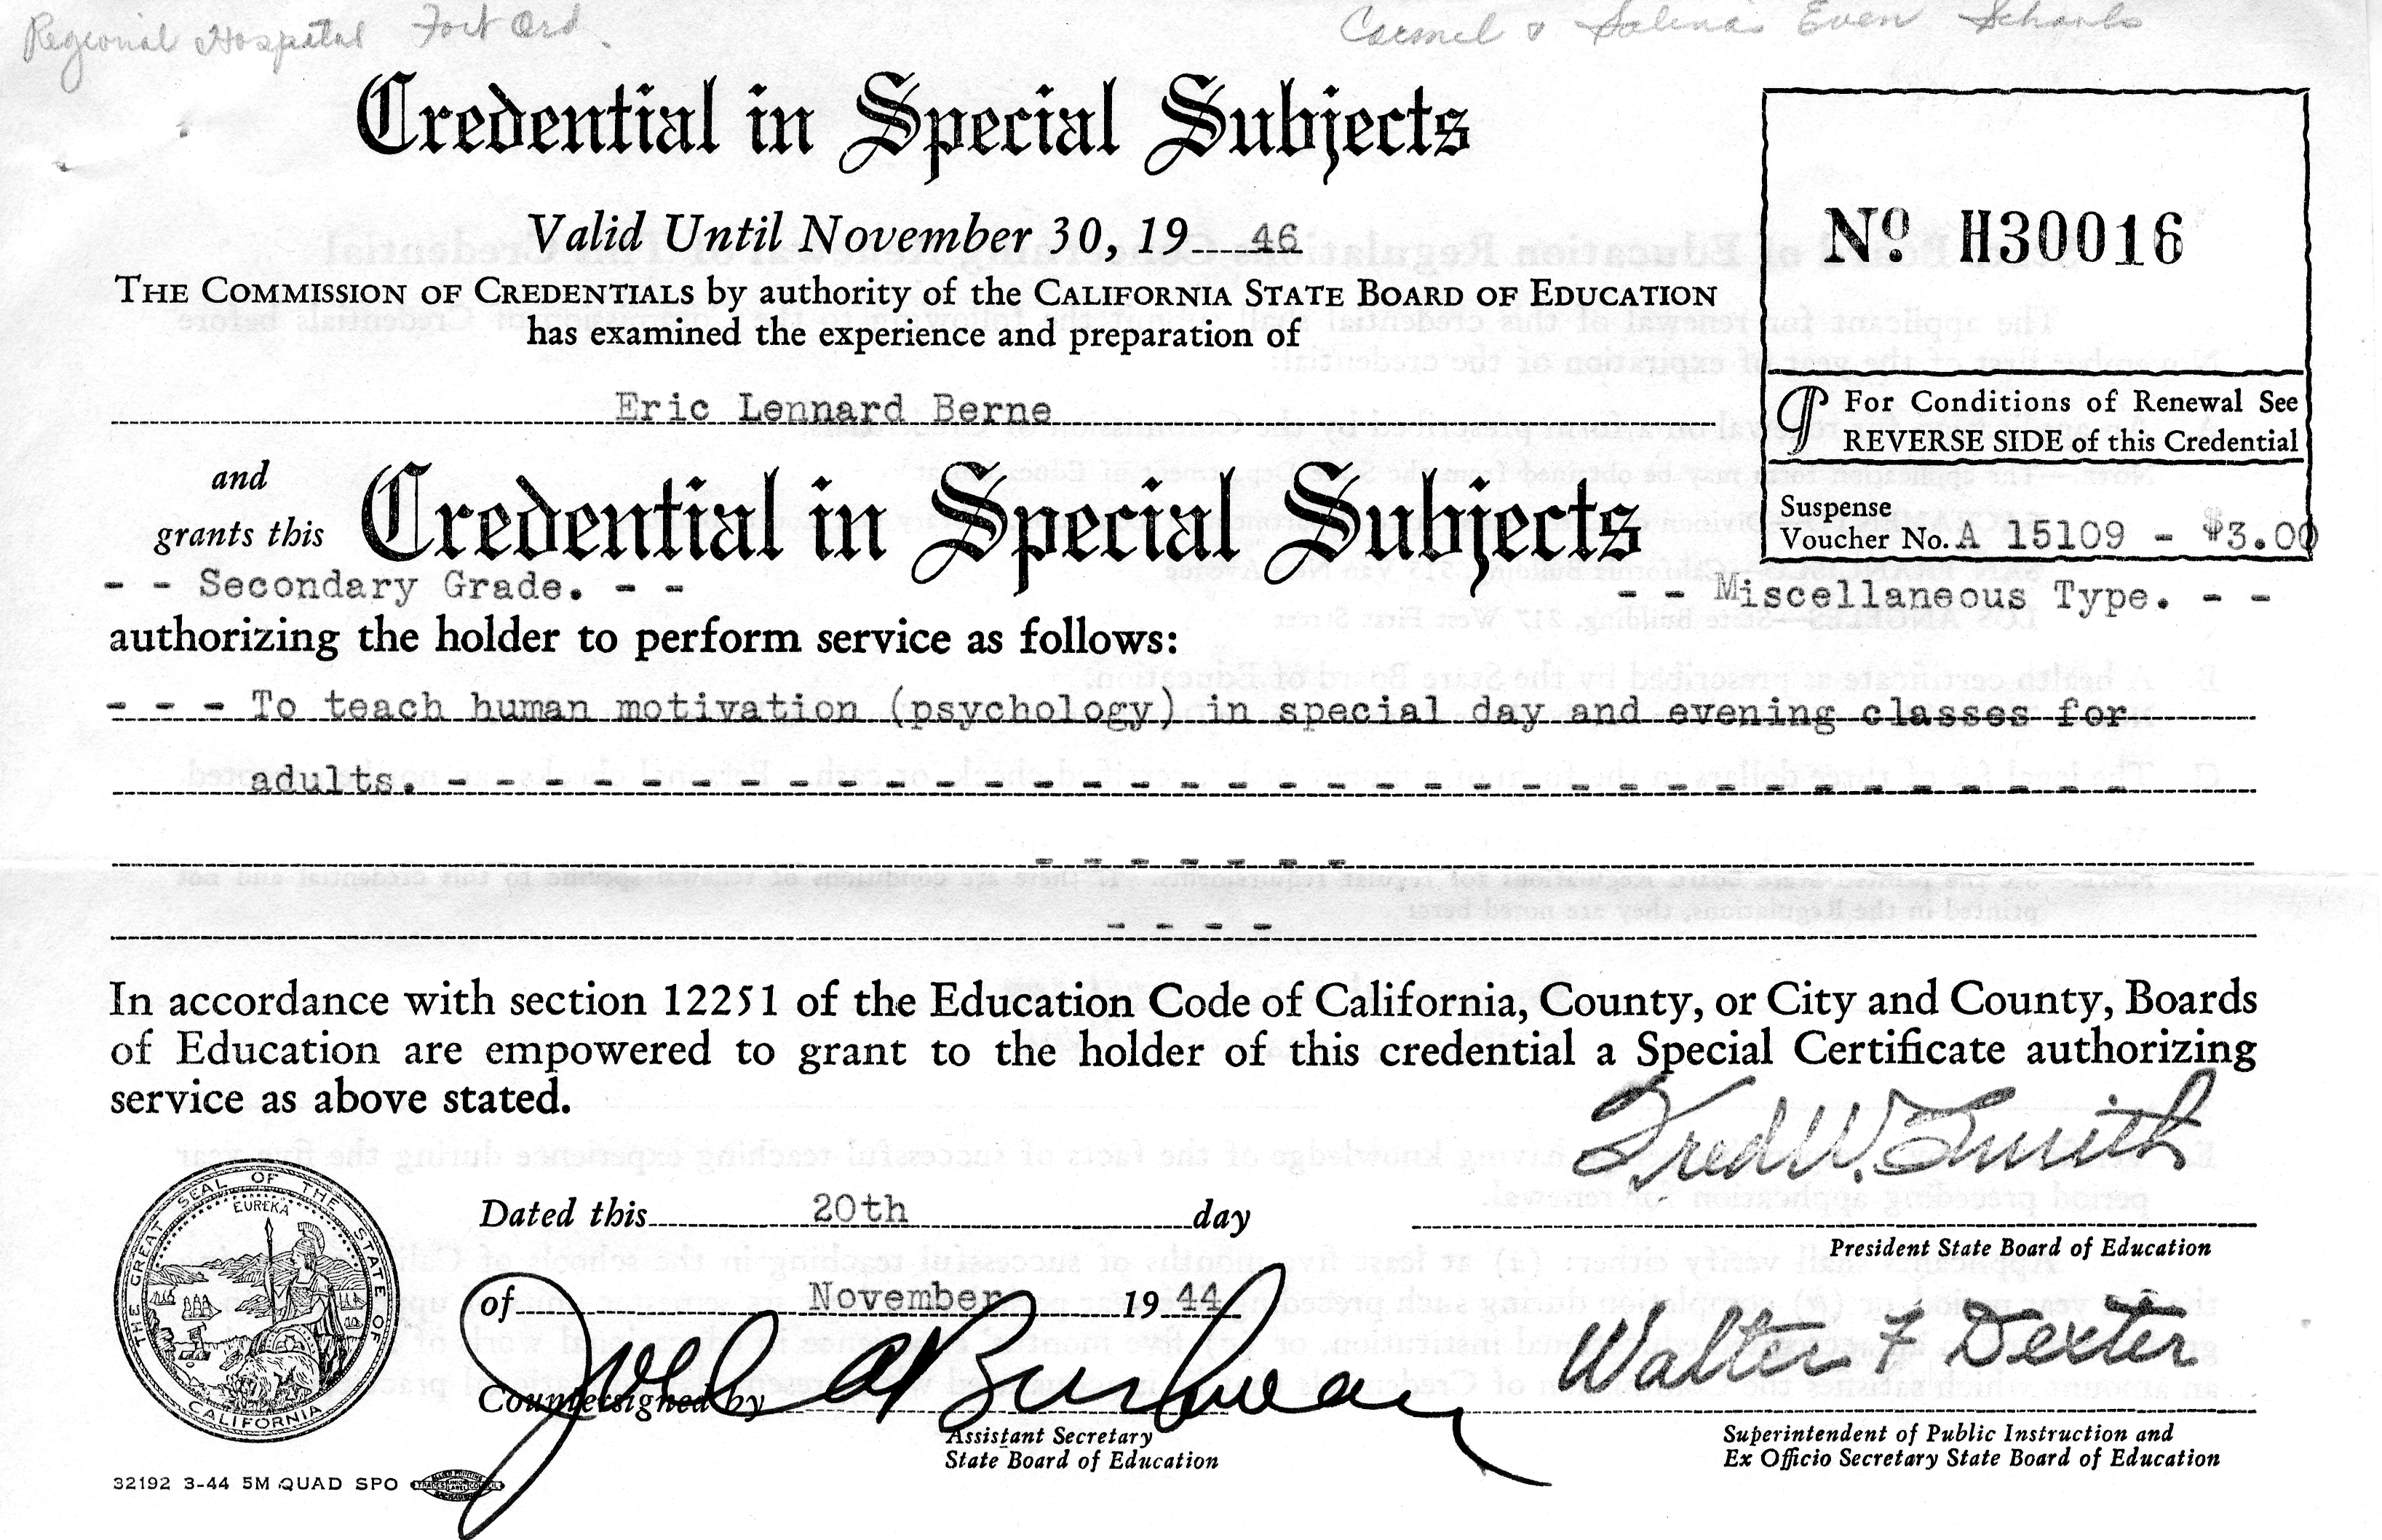 Eric Berne's credential in special subjects